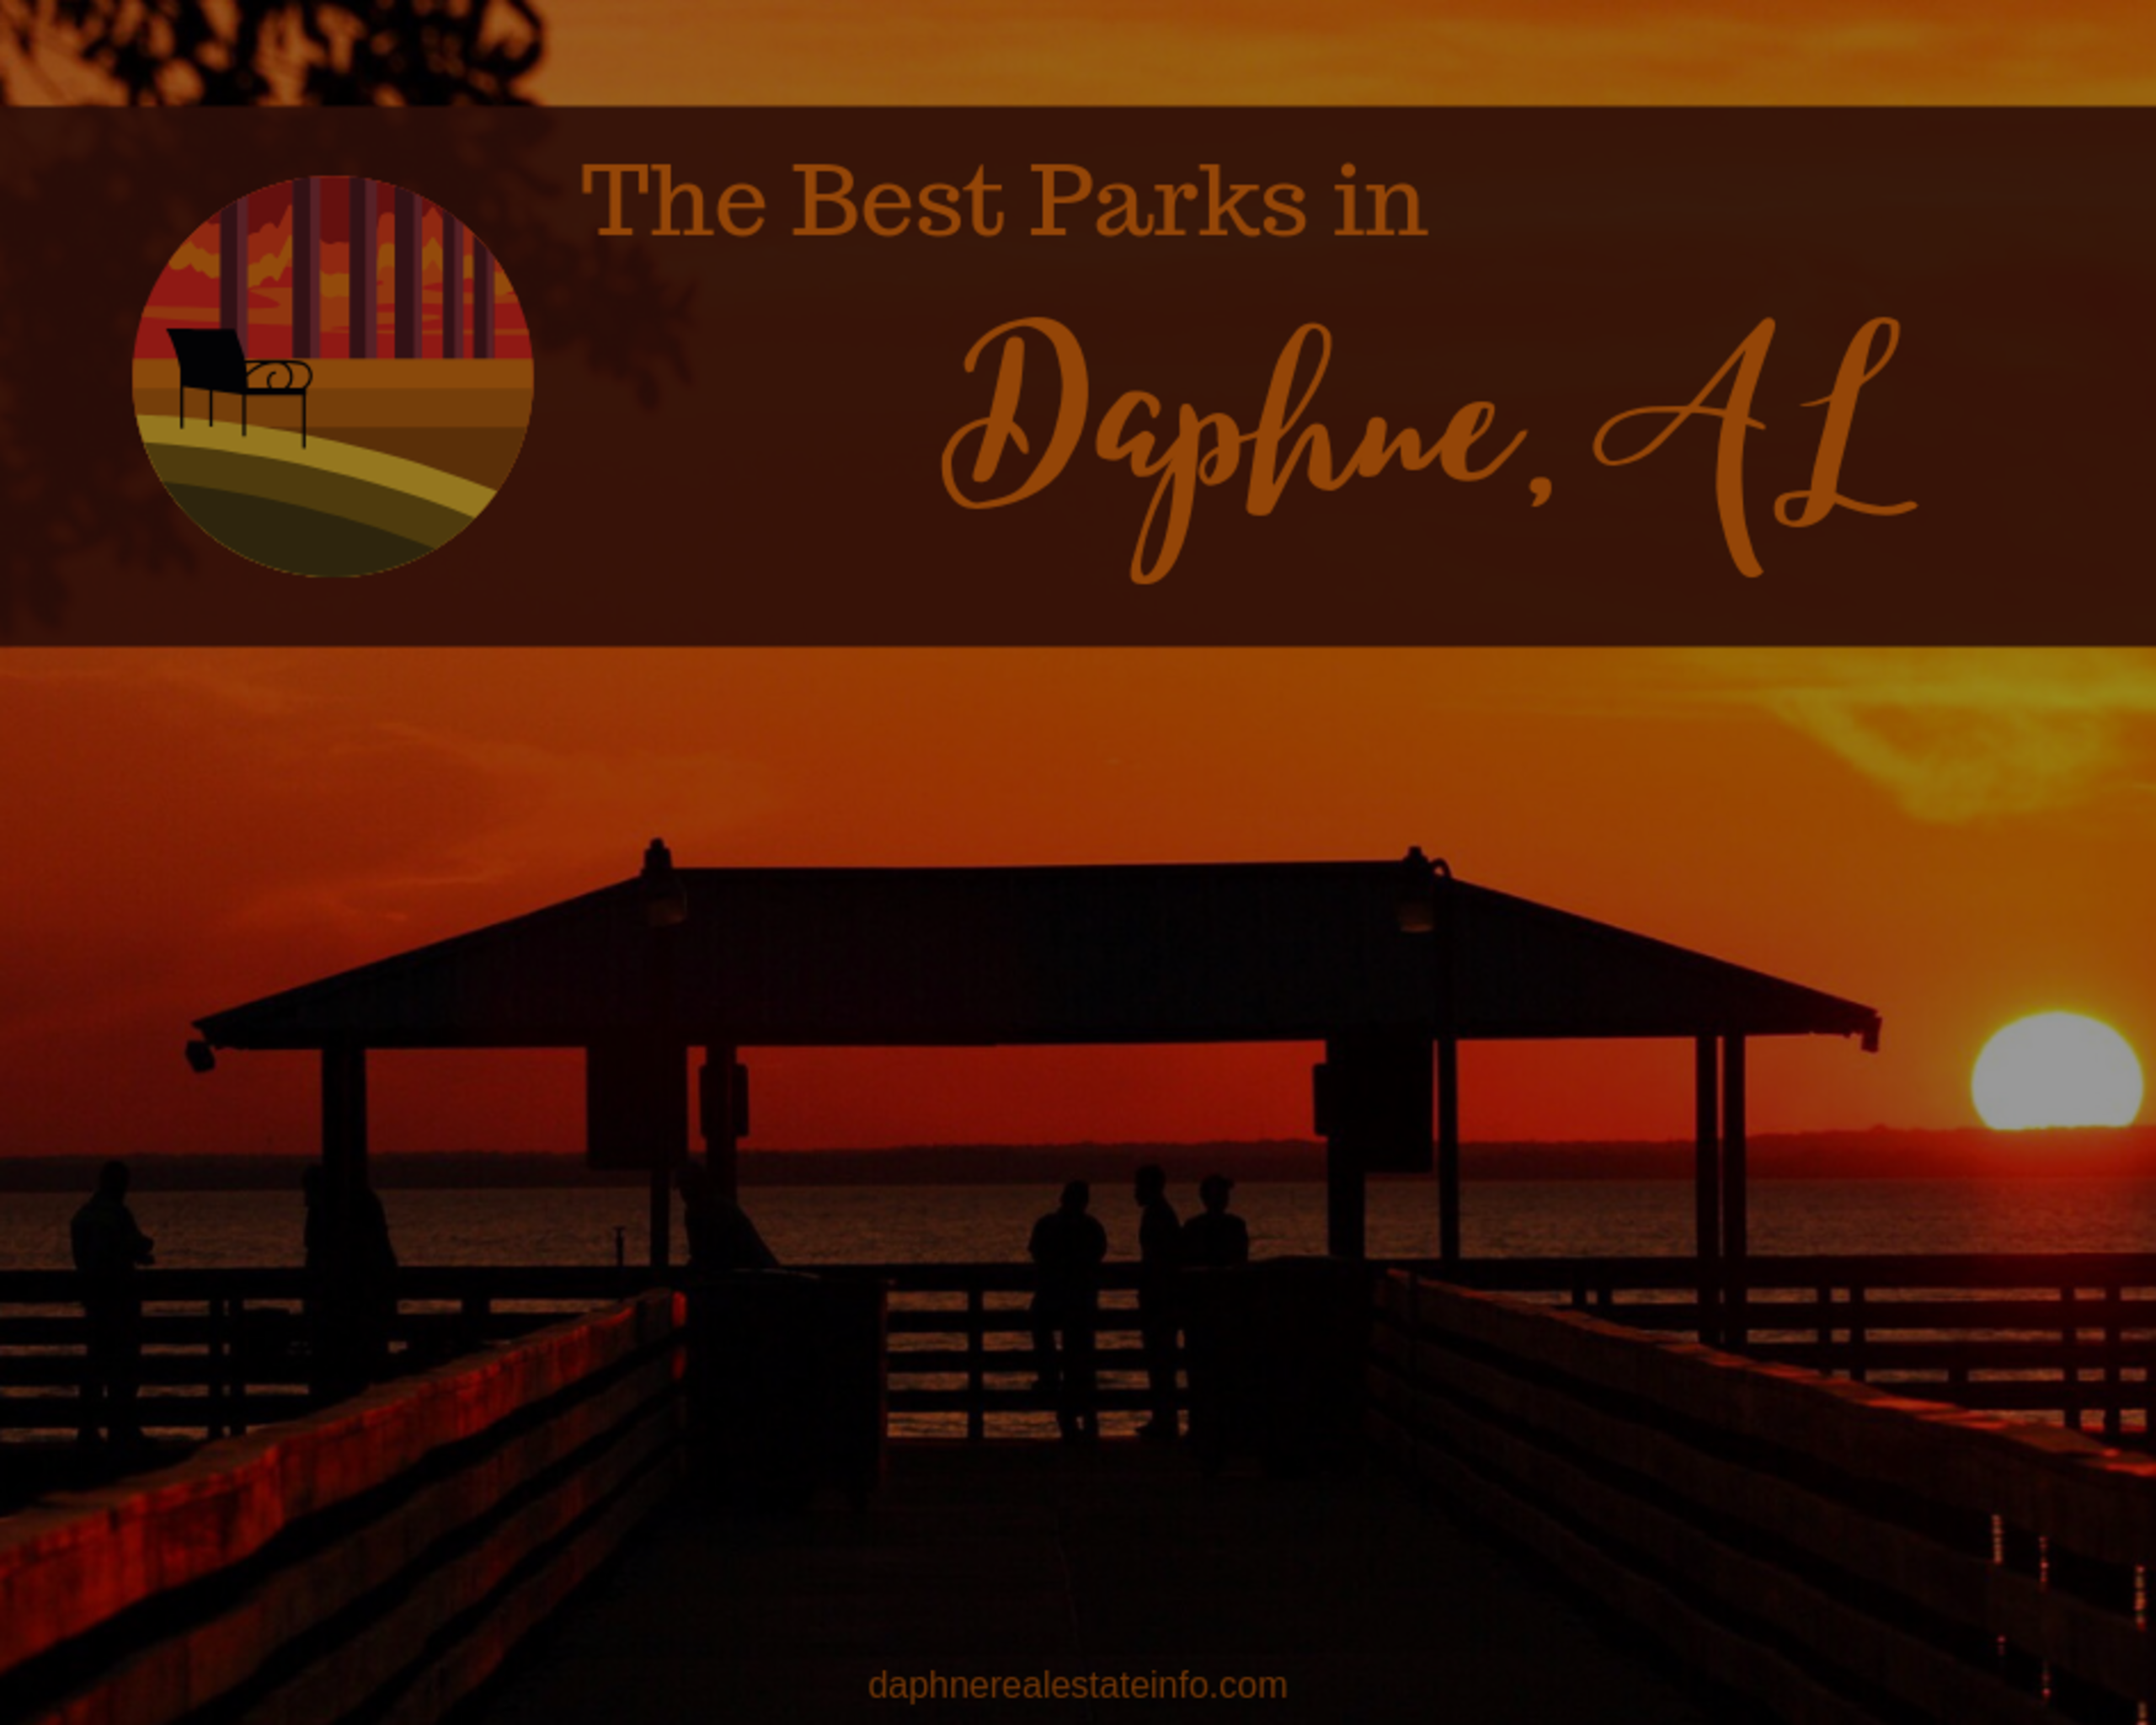 The Best Parks in Daphne AL